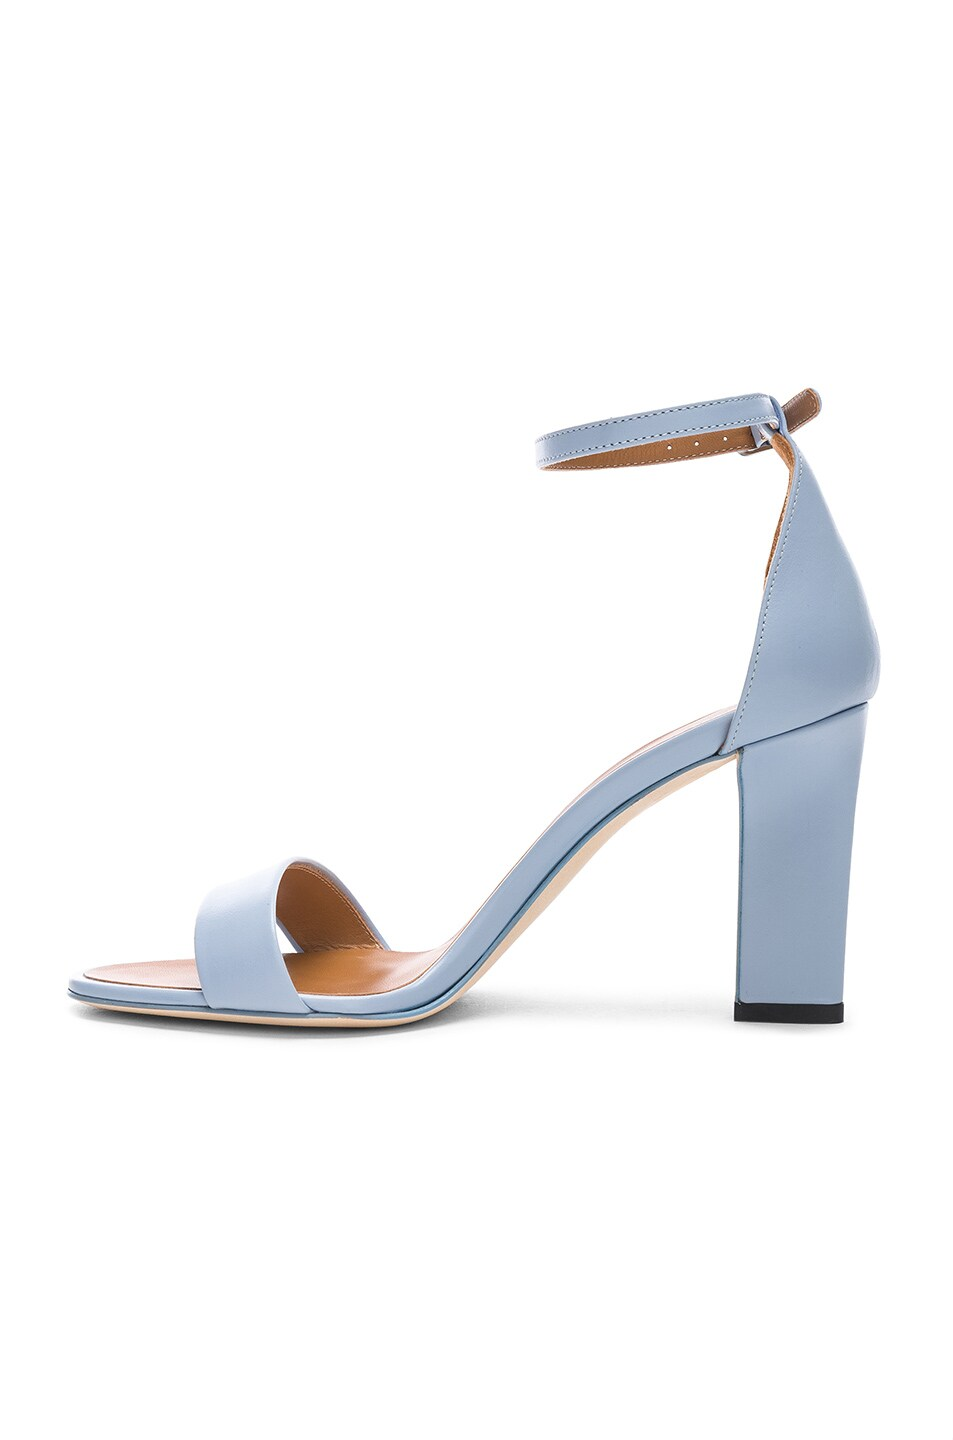 Image 5 of Victoria Beckham Anna Sandal in Baby Blue